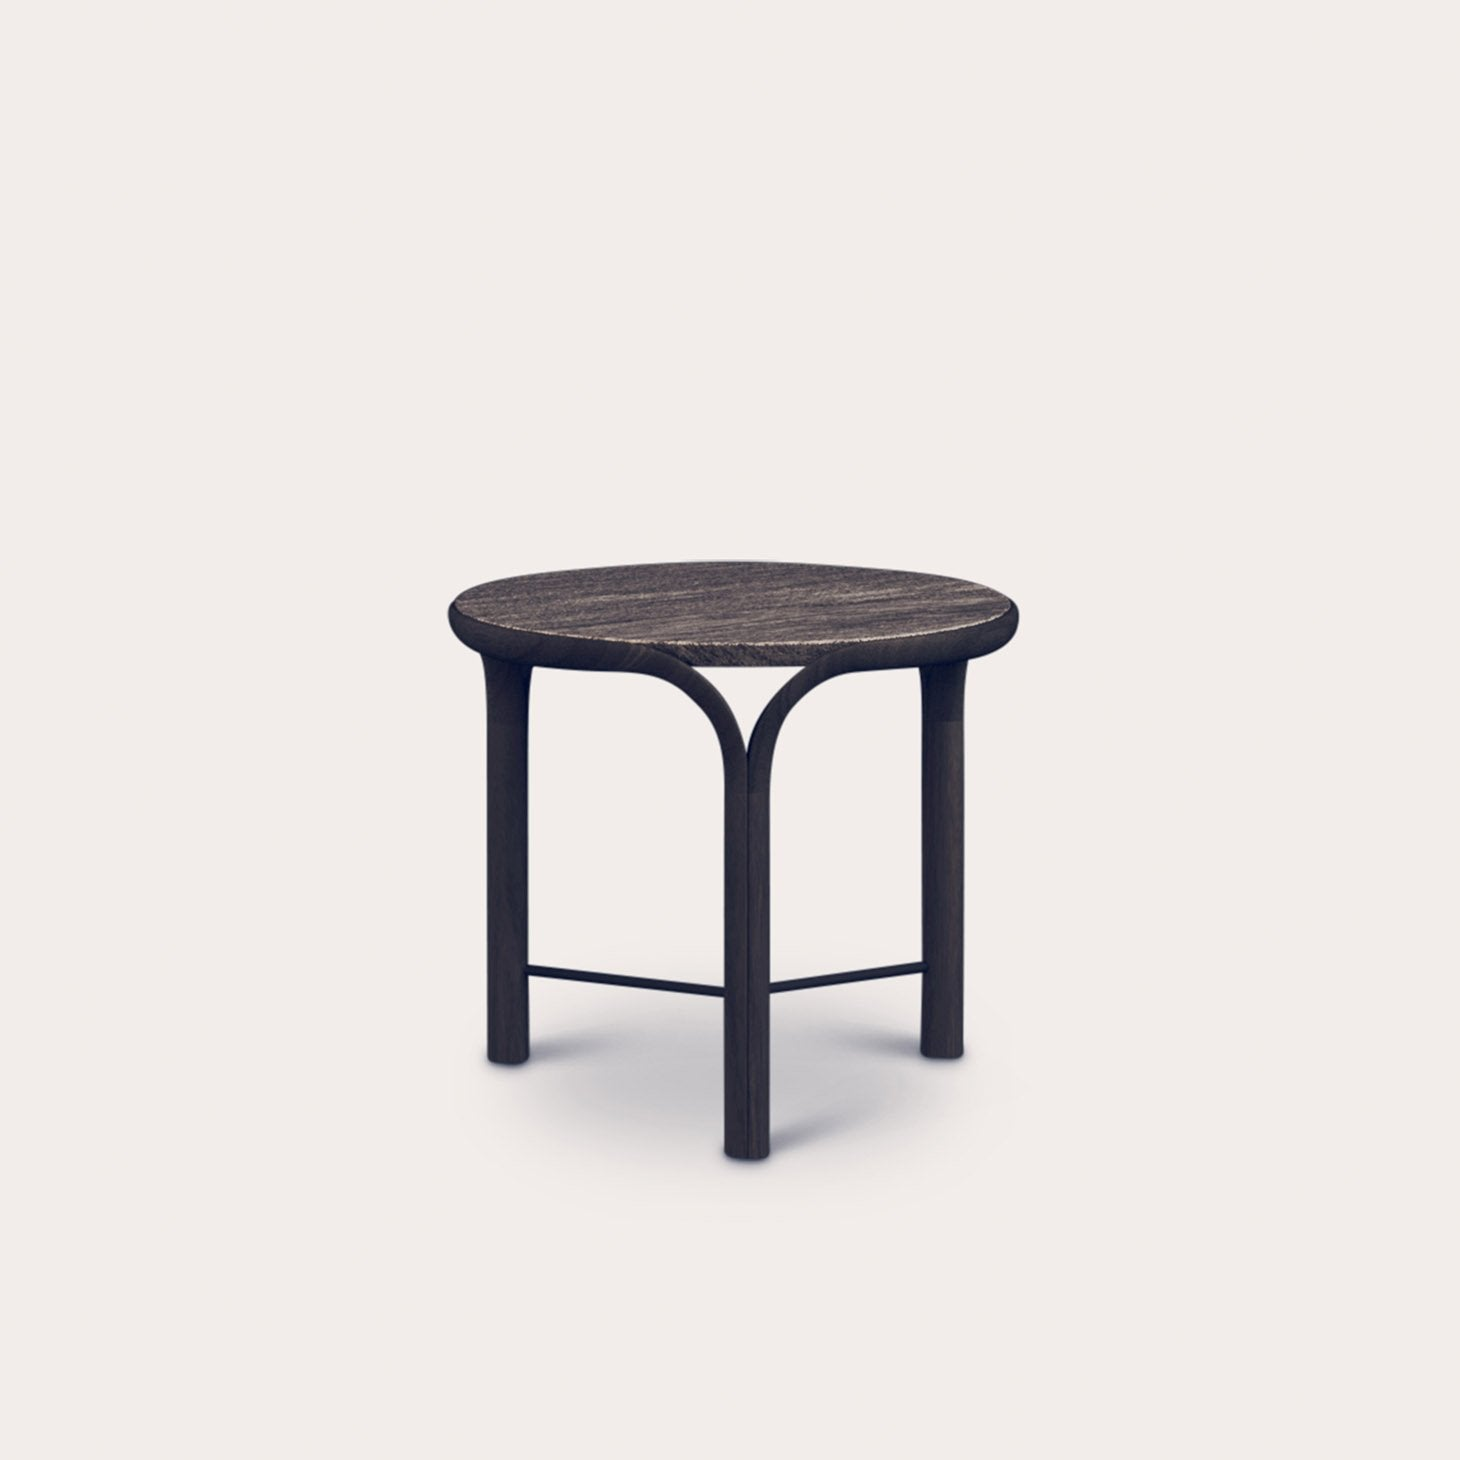 Maua Tables Bruno Moinard Designer Furniture Sku: 773-230-10026